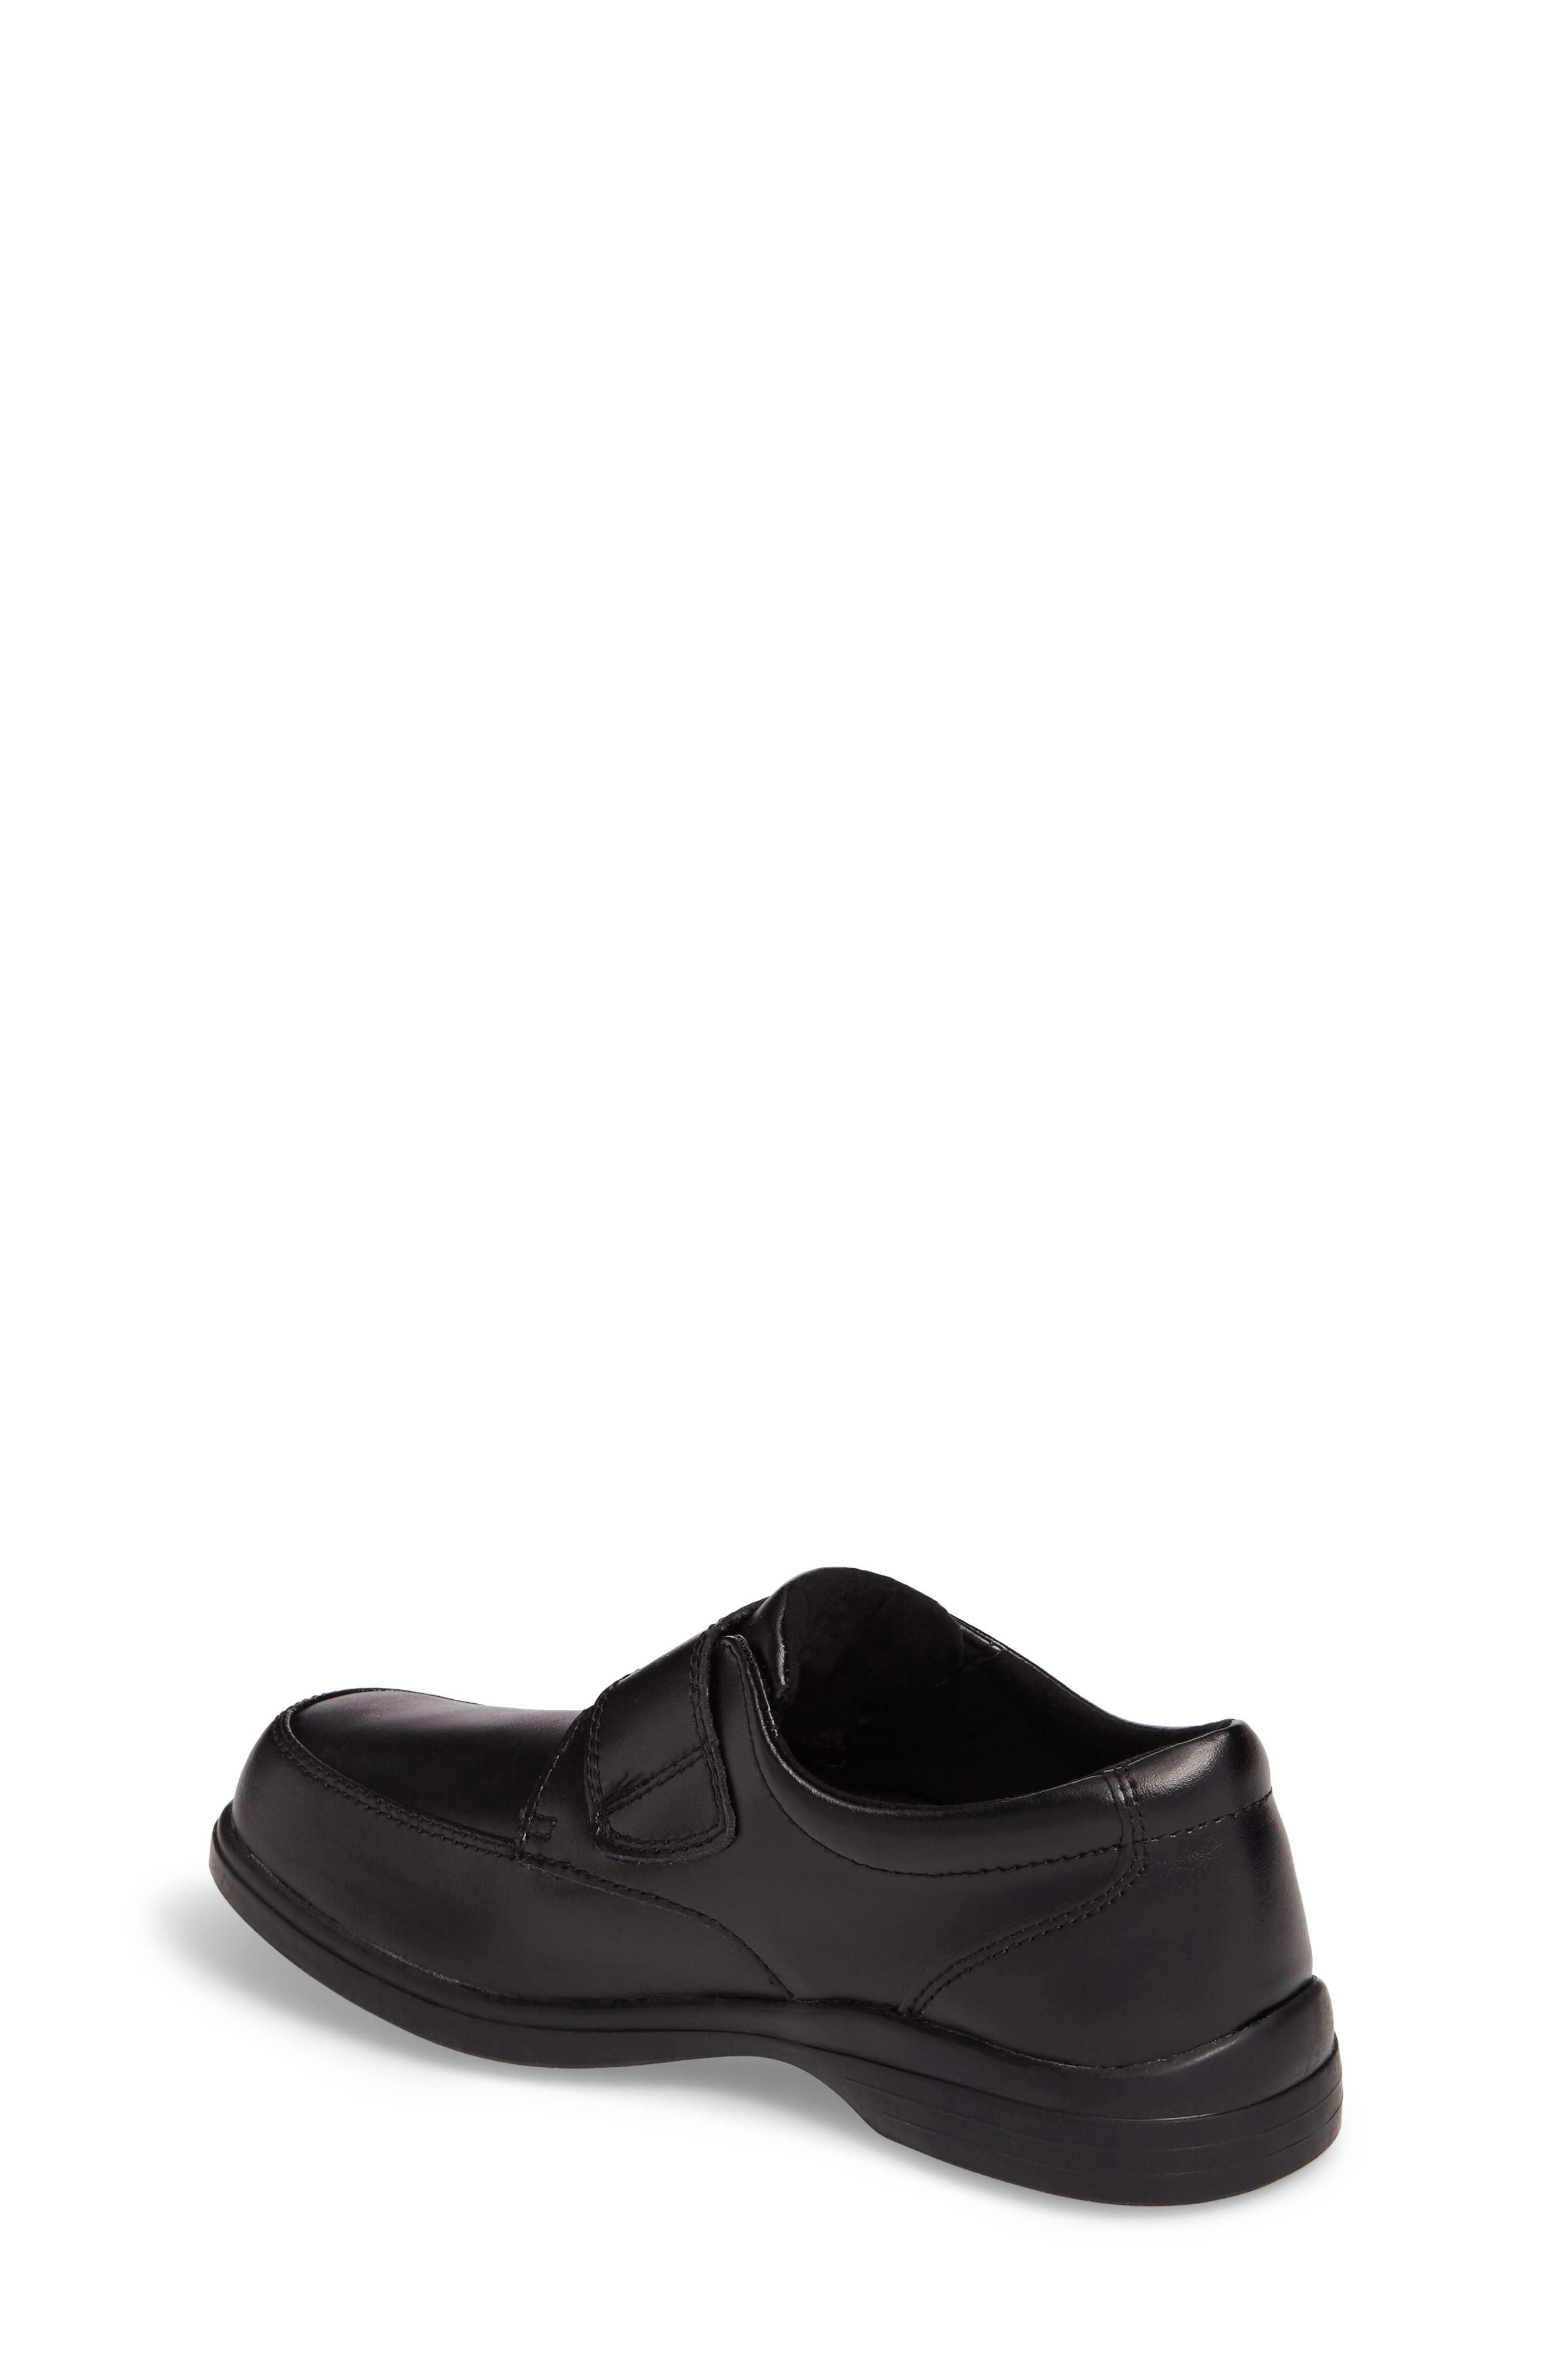 Alternate Image 2  - Hush Puppies Gavin Front Strap Dress Shoe (Toddler, Little Kid & Big Kid)